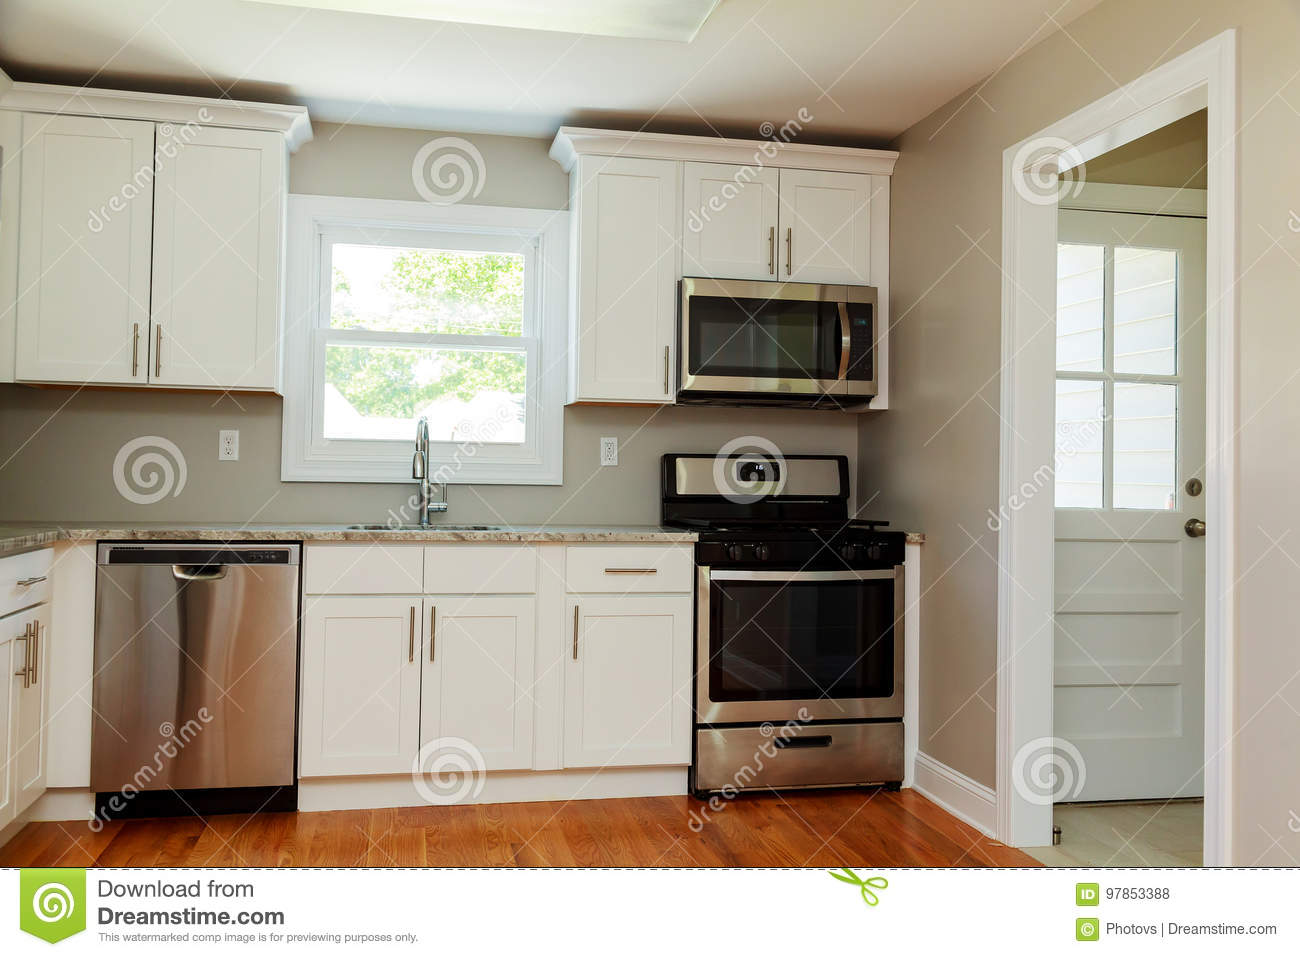 Gourmet Kitchen Features White Shaker Cabinets With Marble Countertops Stock Photo Image Of Cabinets Furnished 97853388